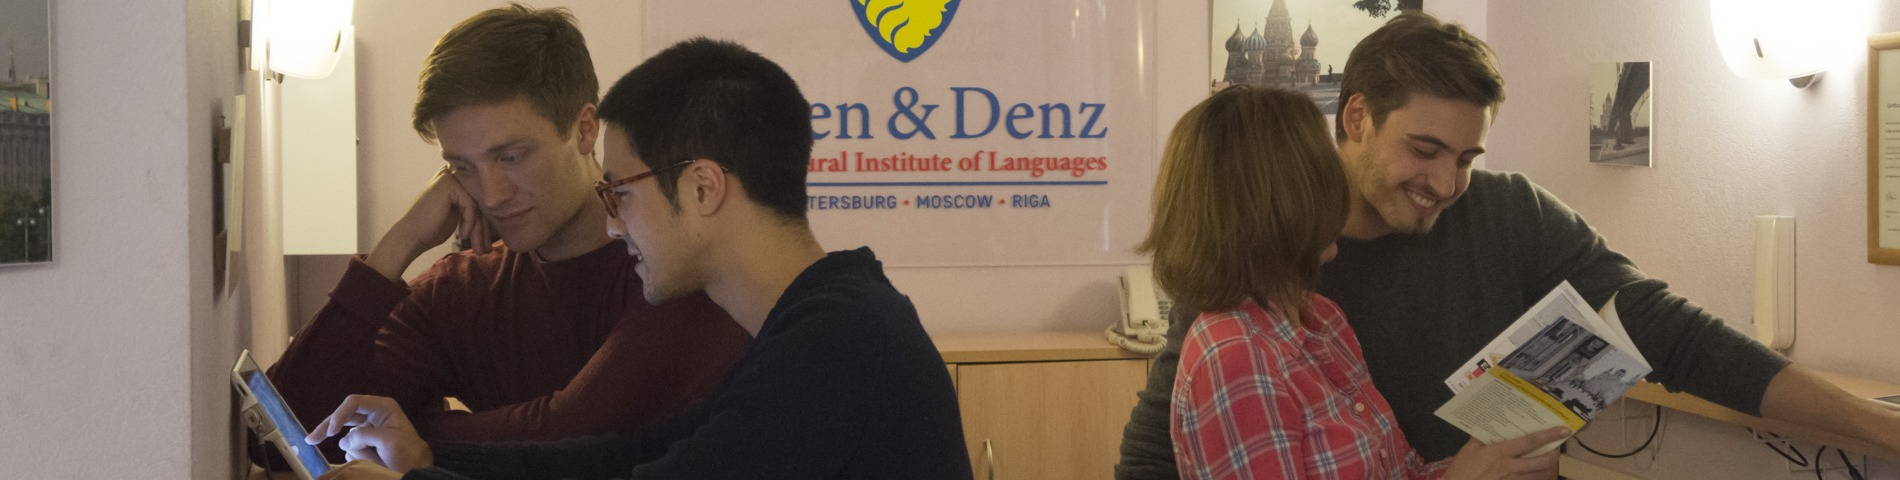 Liden & Denz Language Centre picture 14